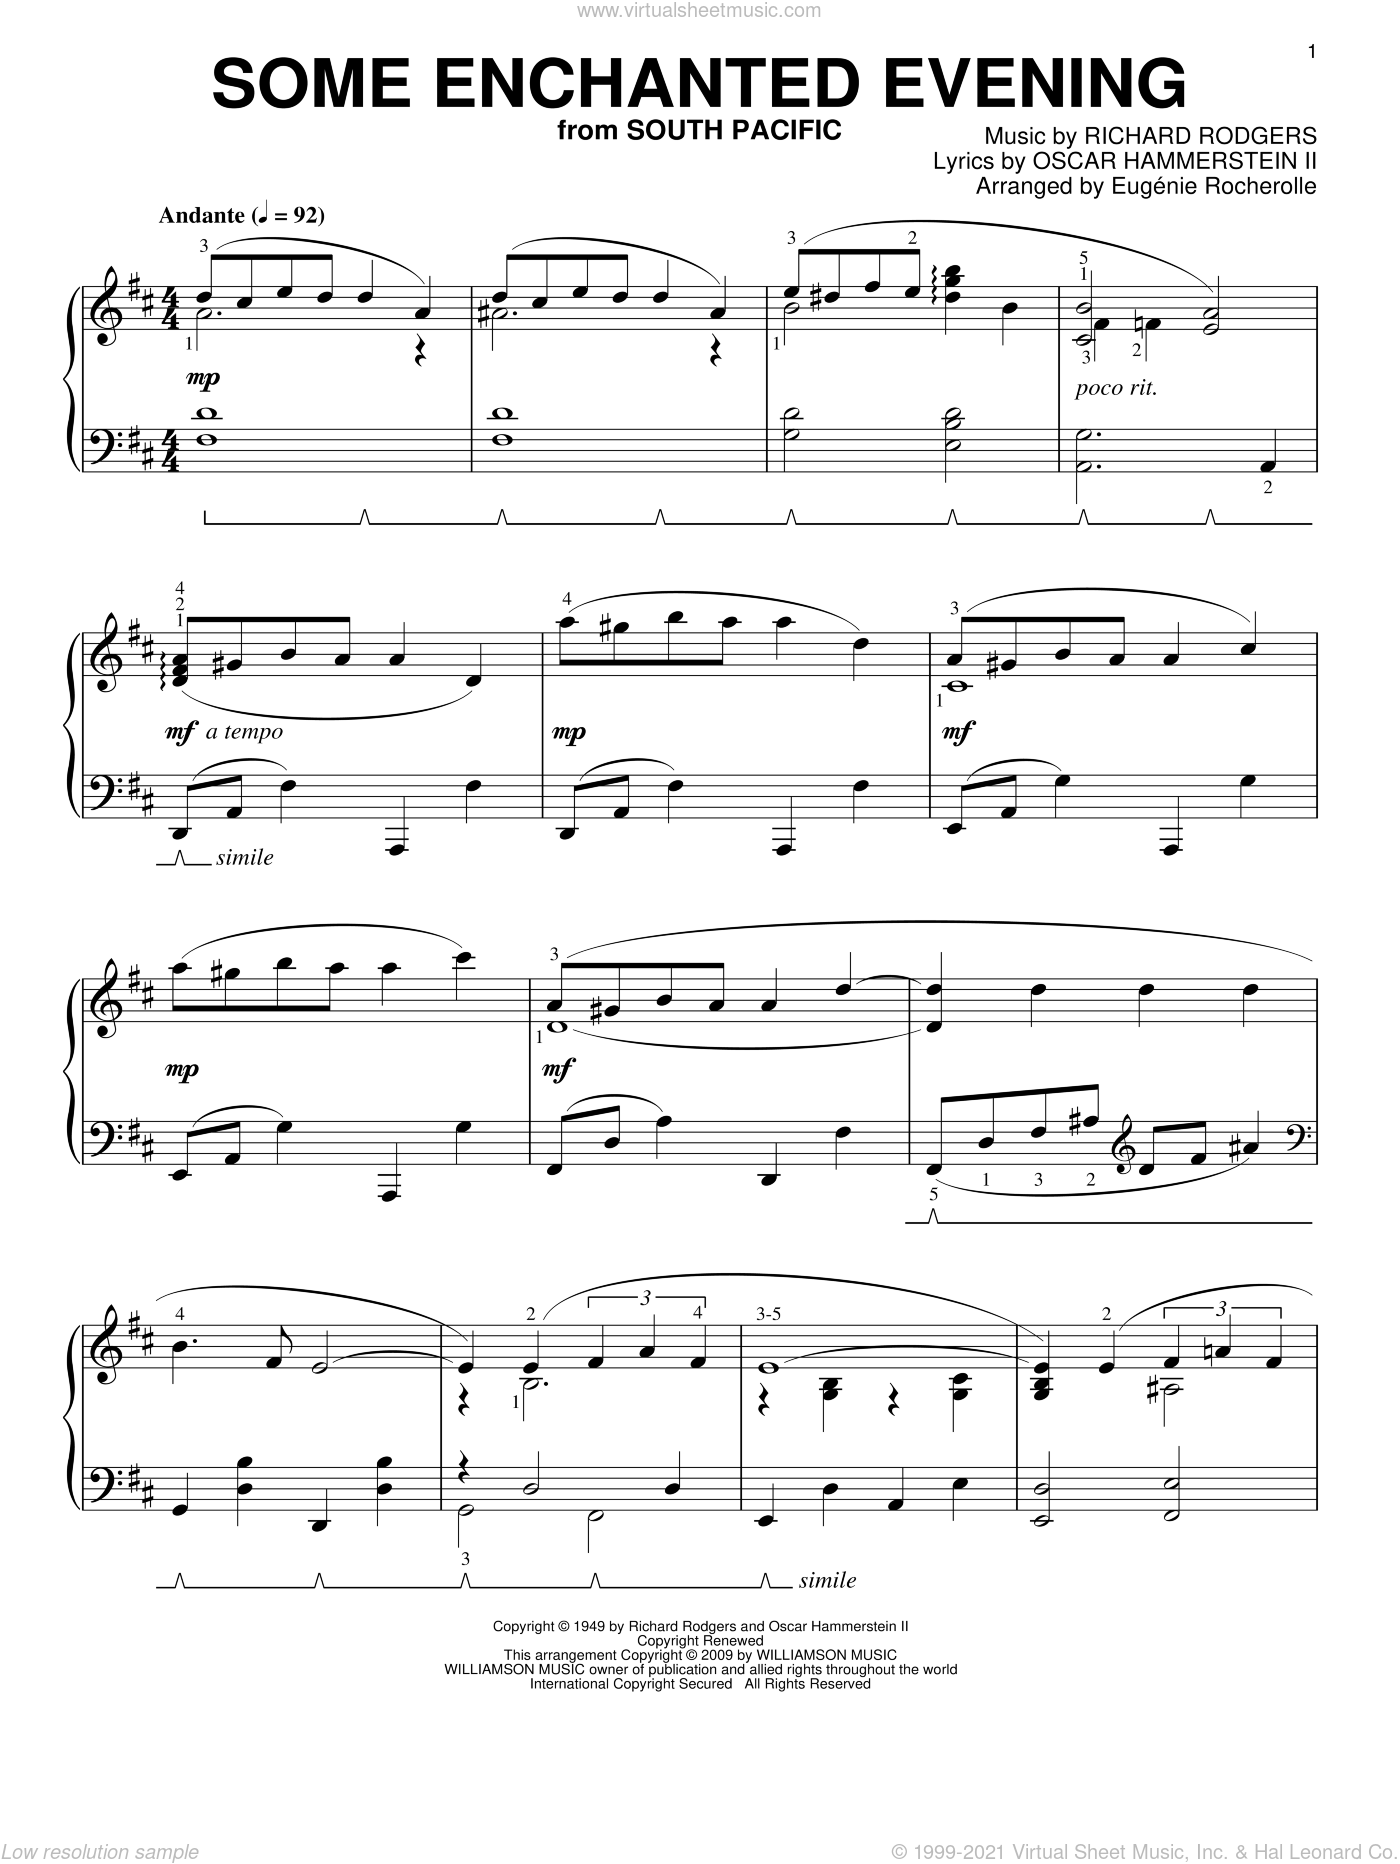 Some Enchanted Evening sheet music for piano solo by Richard Rodgers